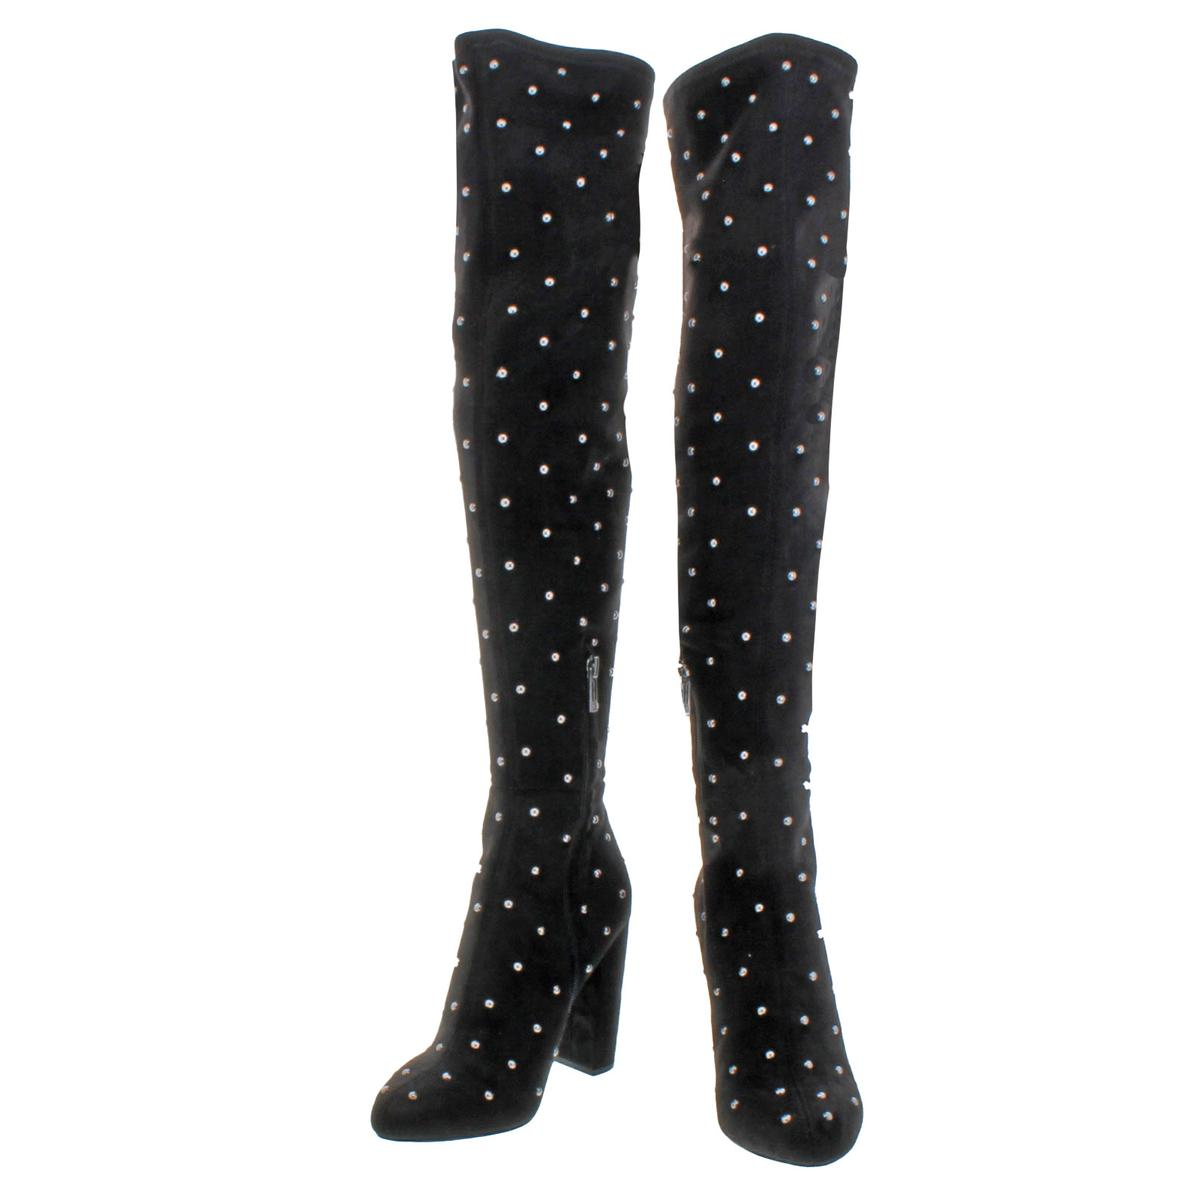 492e940c839 Jessica Simpson Bressy Women s Microsuede Studded Over The Knee ...